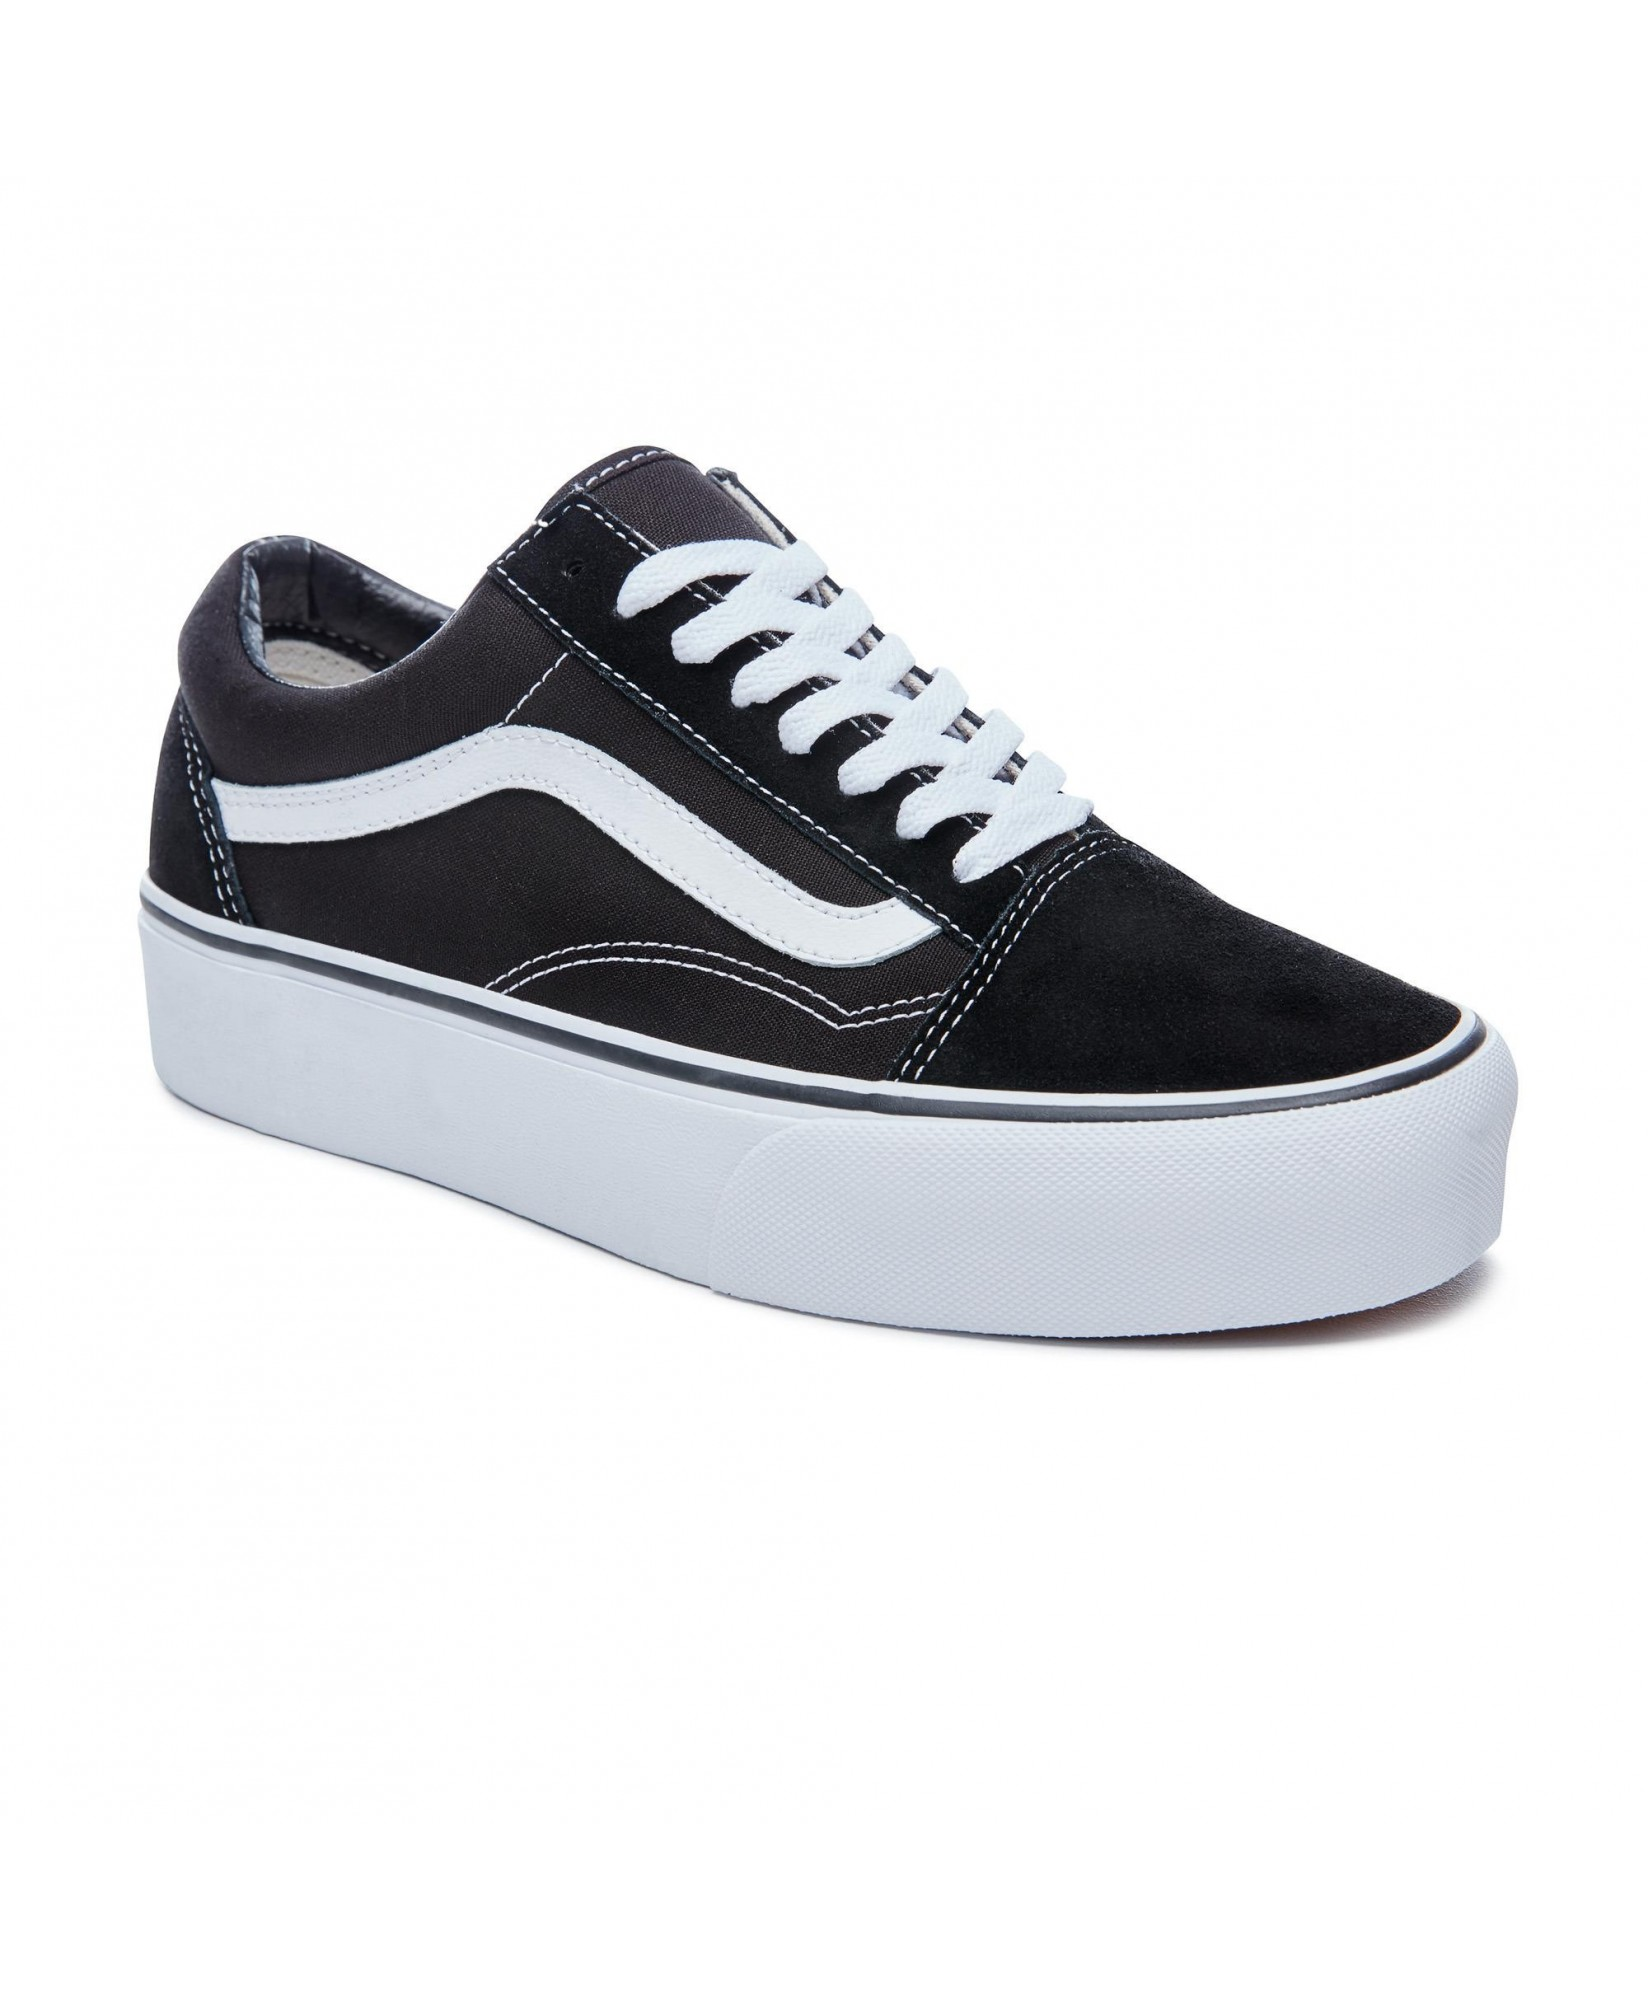 ZAPATILLAS OLD SKOOL DE PLATAFORMA ZAPATILLAS OLD SKOOL DE PLATAFORMA